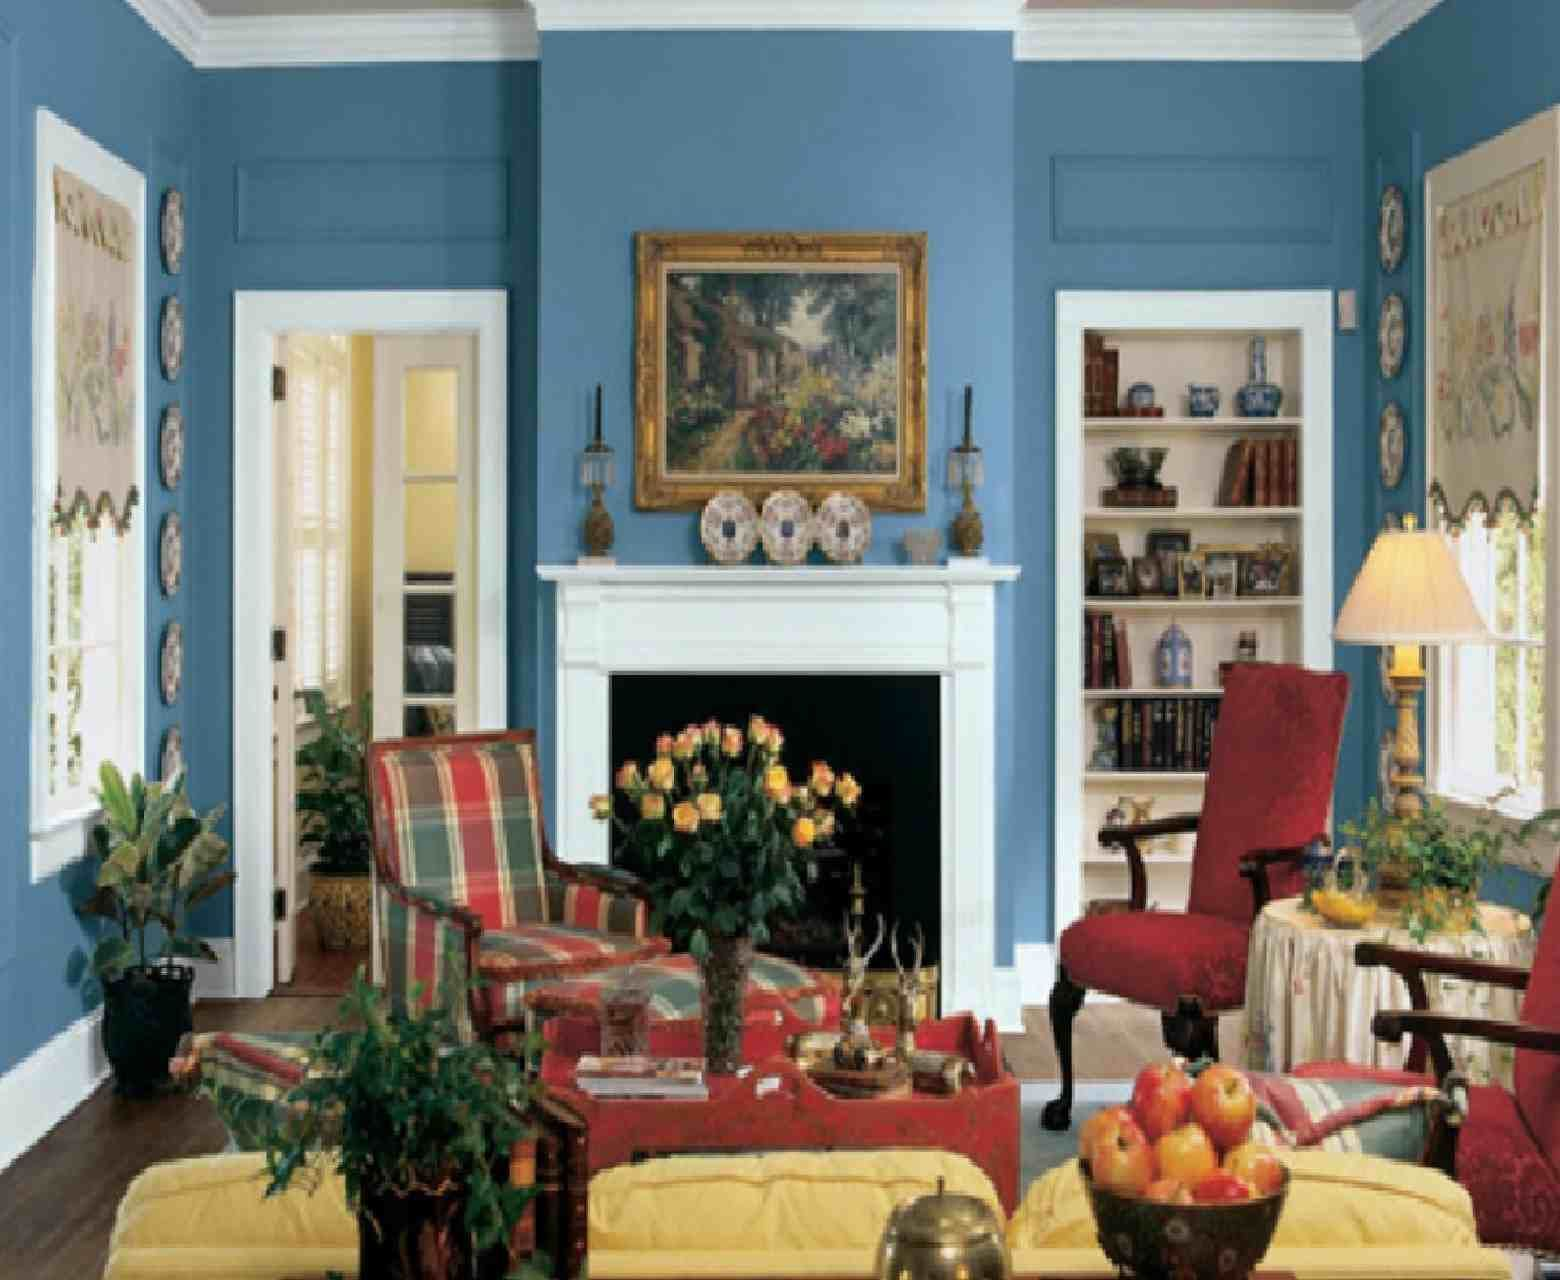 traditional living room interior design ideas for painting